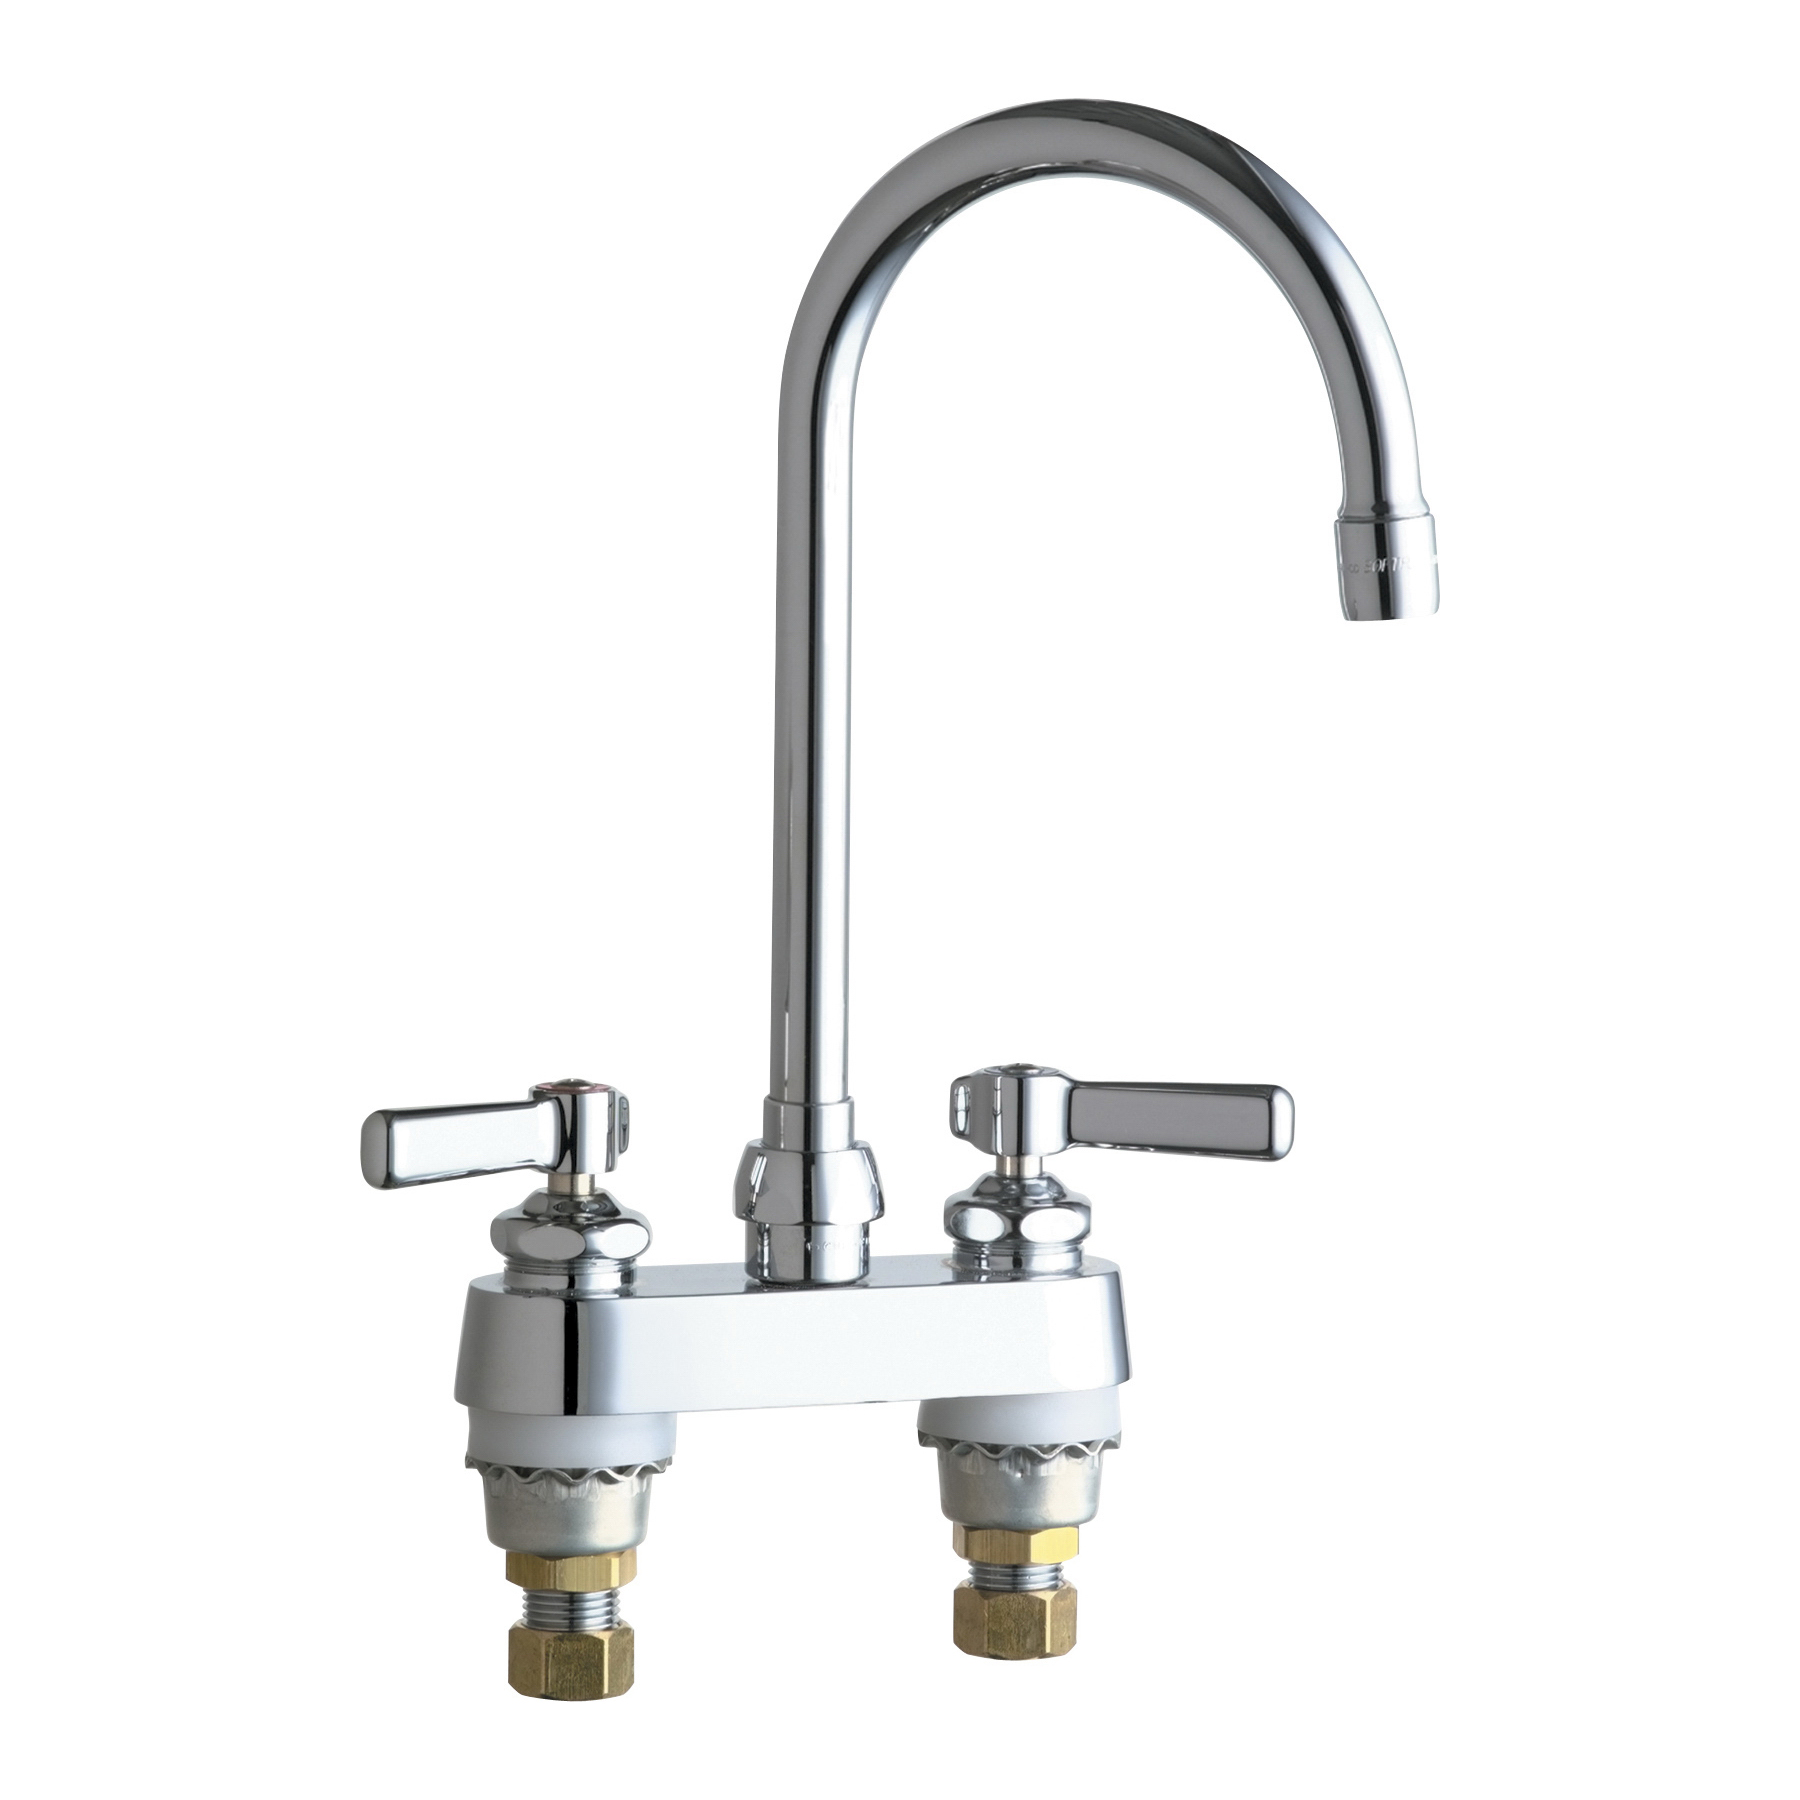 Chicago Faucet® 895-GN2AE3ABCP Lavatory Sink Faucet, Chrome Plated, 2 Handles, 2.2 gpm